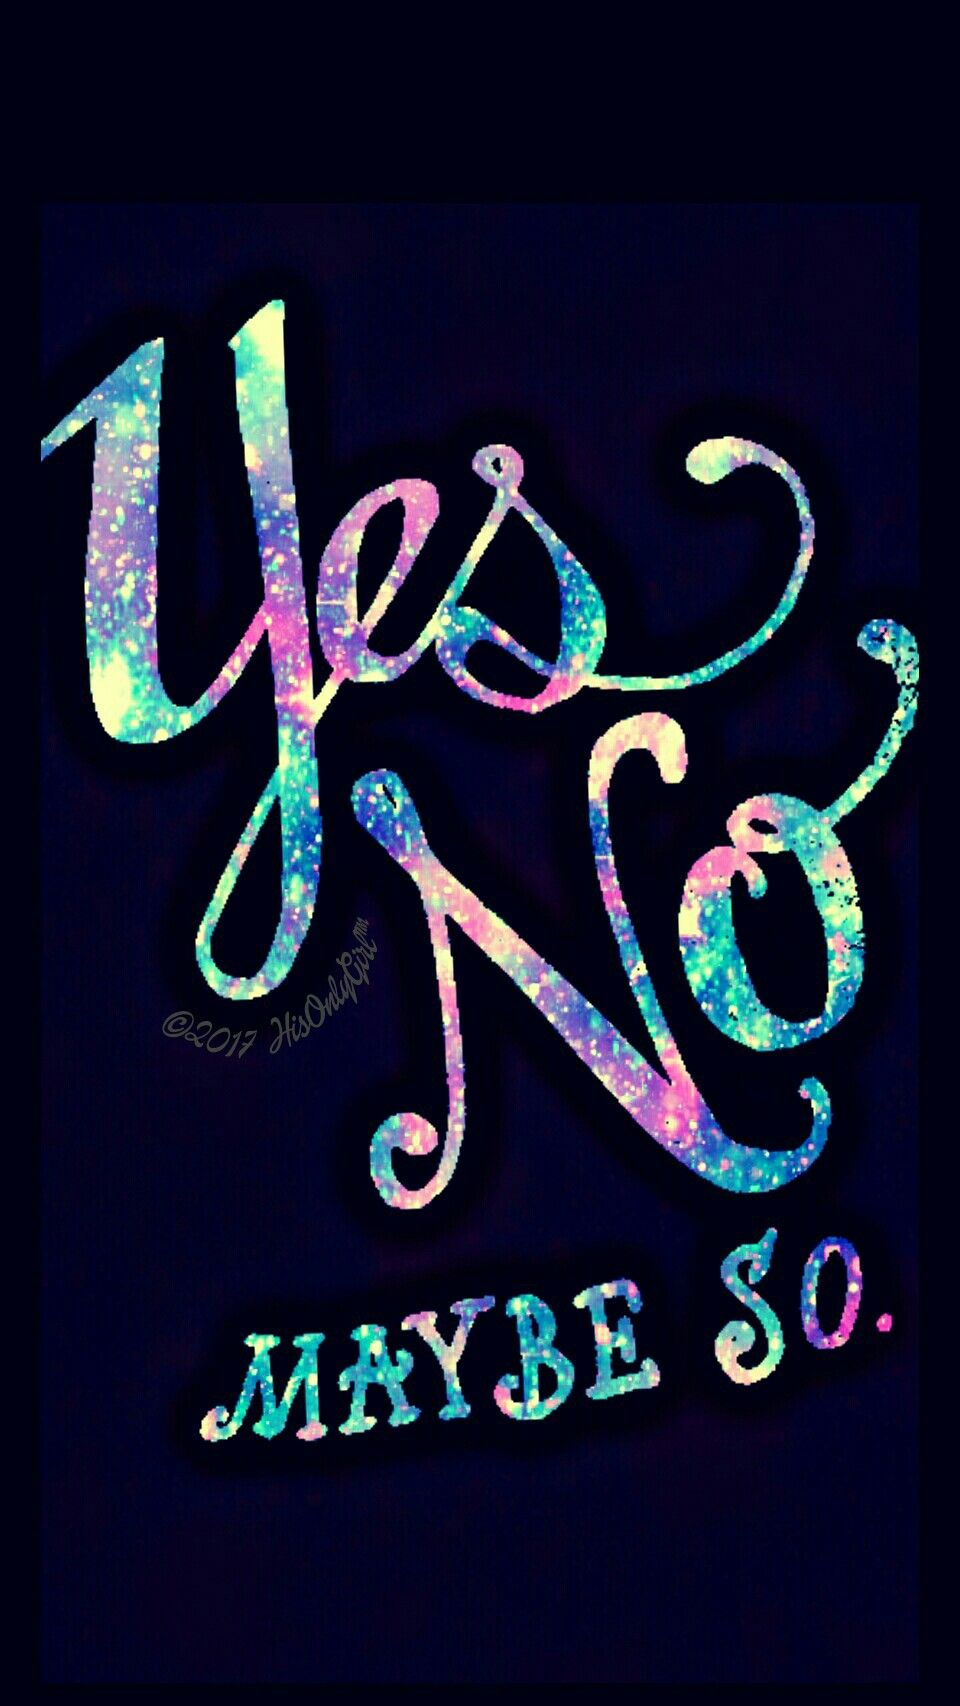 Yes, no galaxy wallpaper I created for the app CocoPPa!